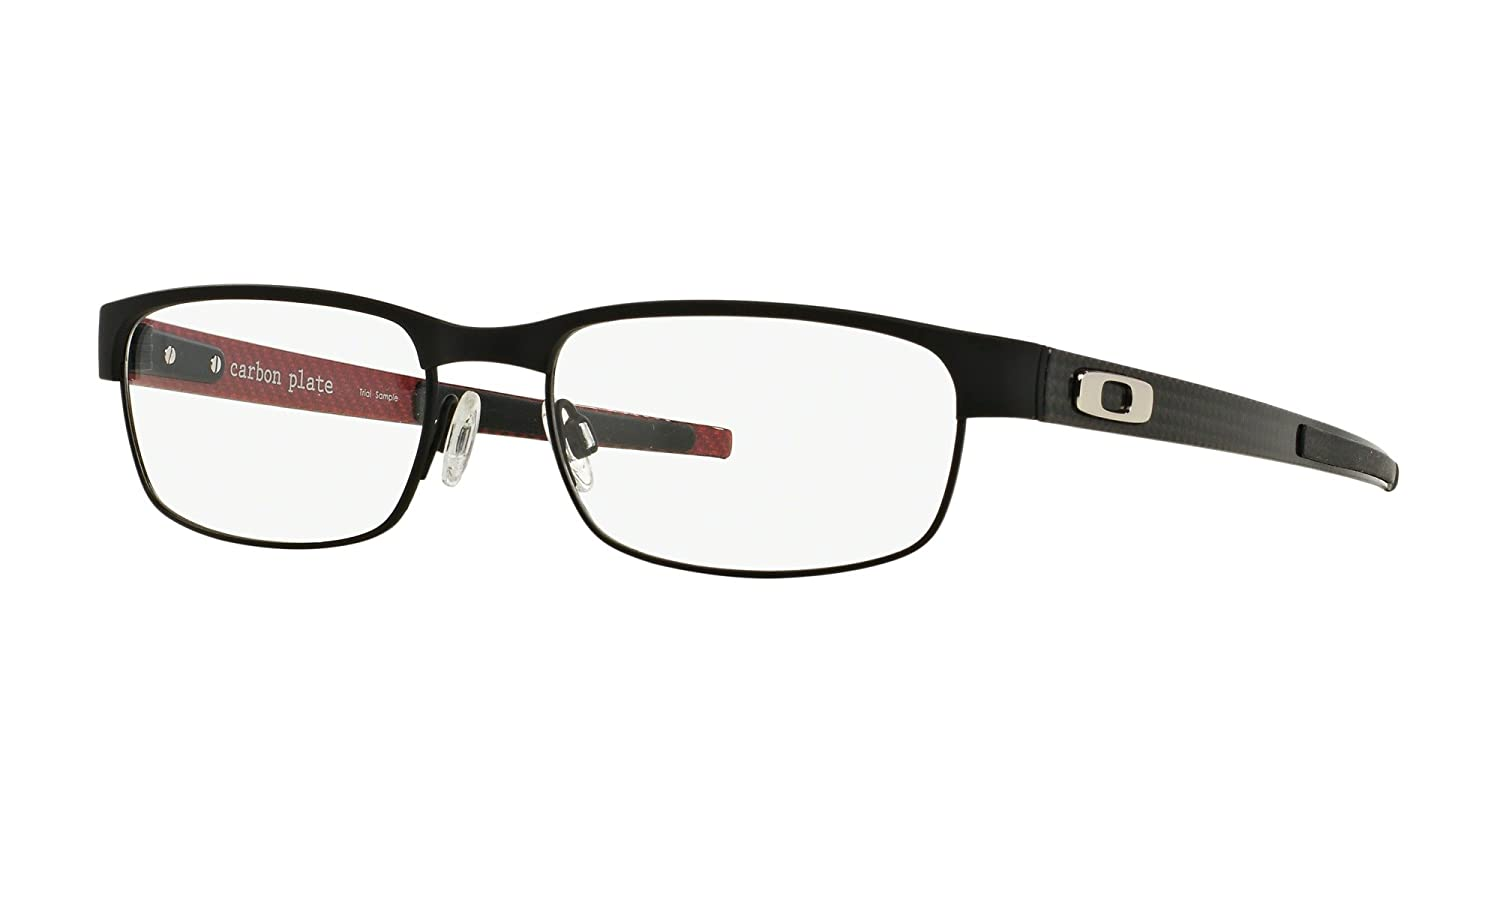 04cd477bf01 Amazon.com  Oakley Carbon Plate OX5079-0153 Eyeglasses Matte Black Clear  Demo 53 18  Oakley  Clothing